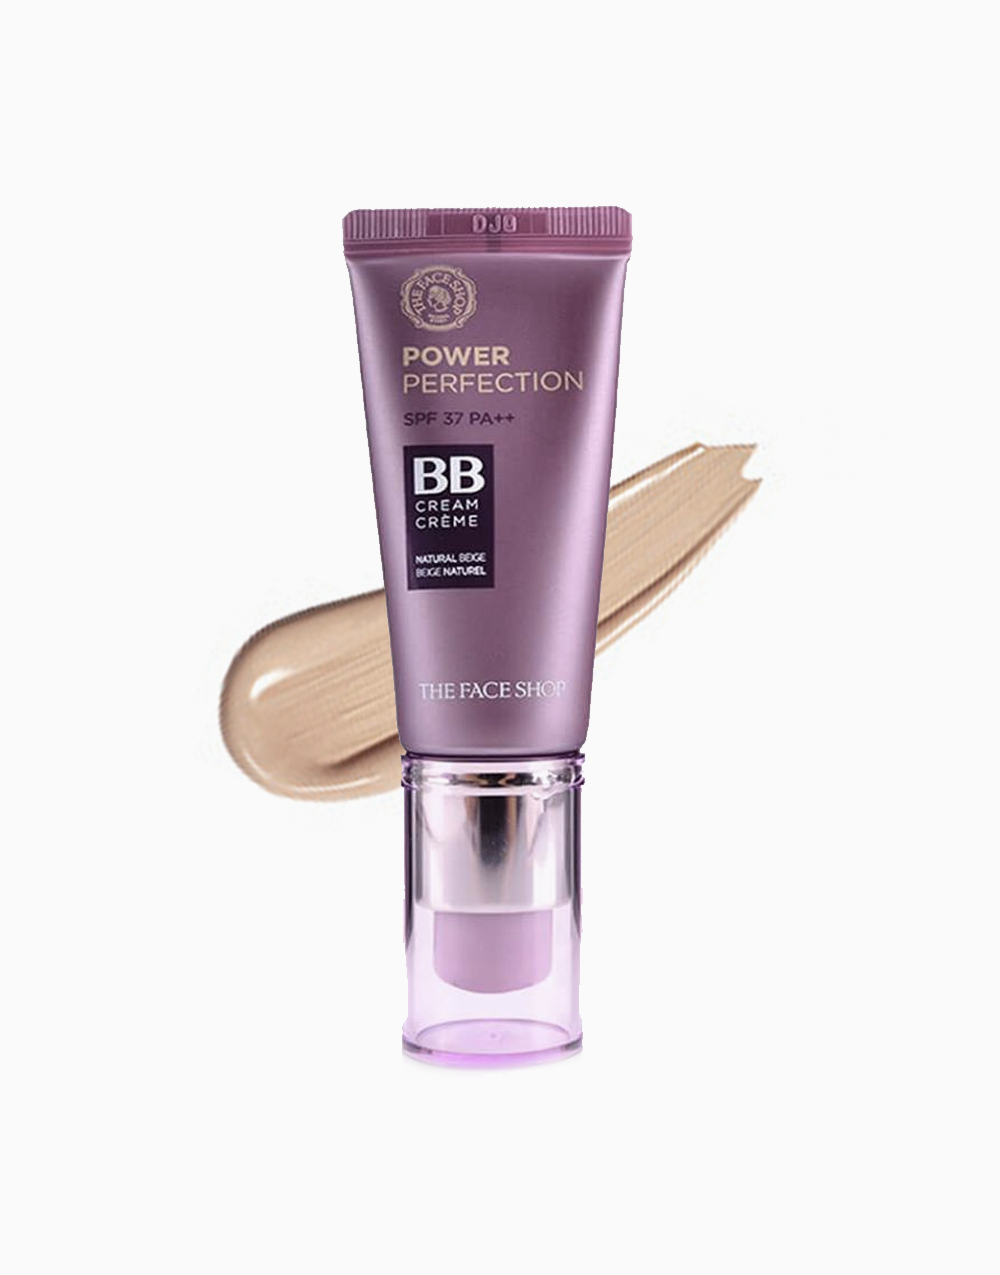 Power Perfection BB Cream SPF37 PA++ by The Face Shop | V203